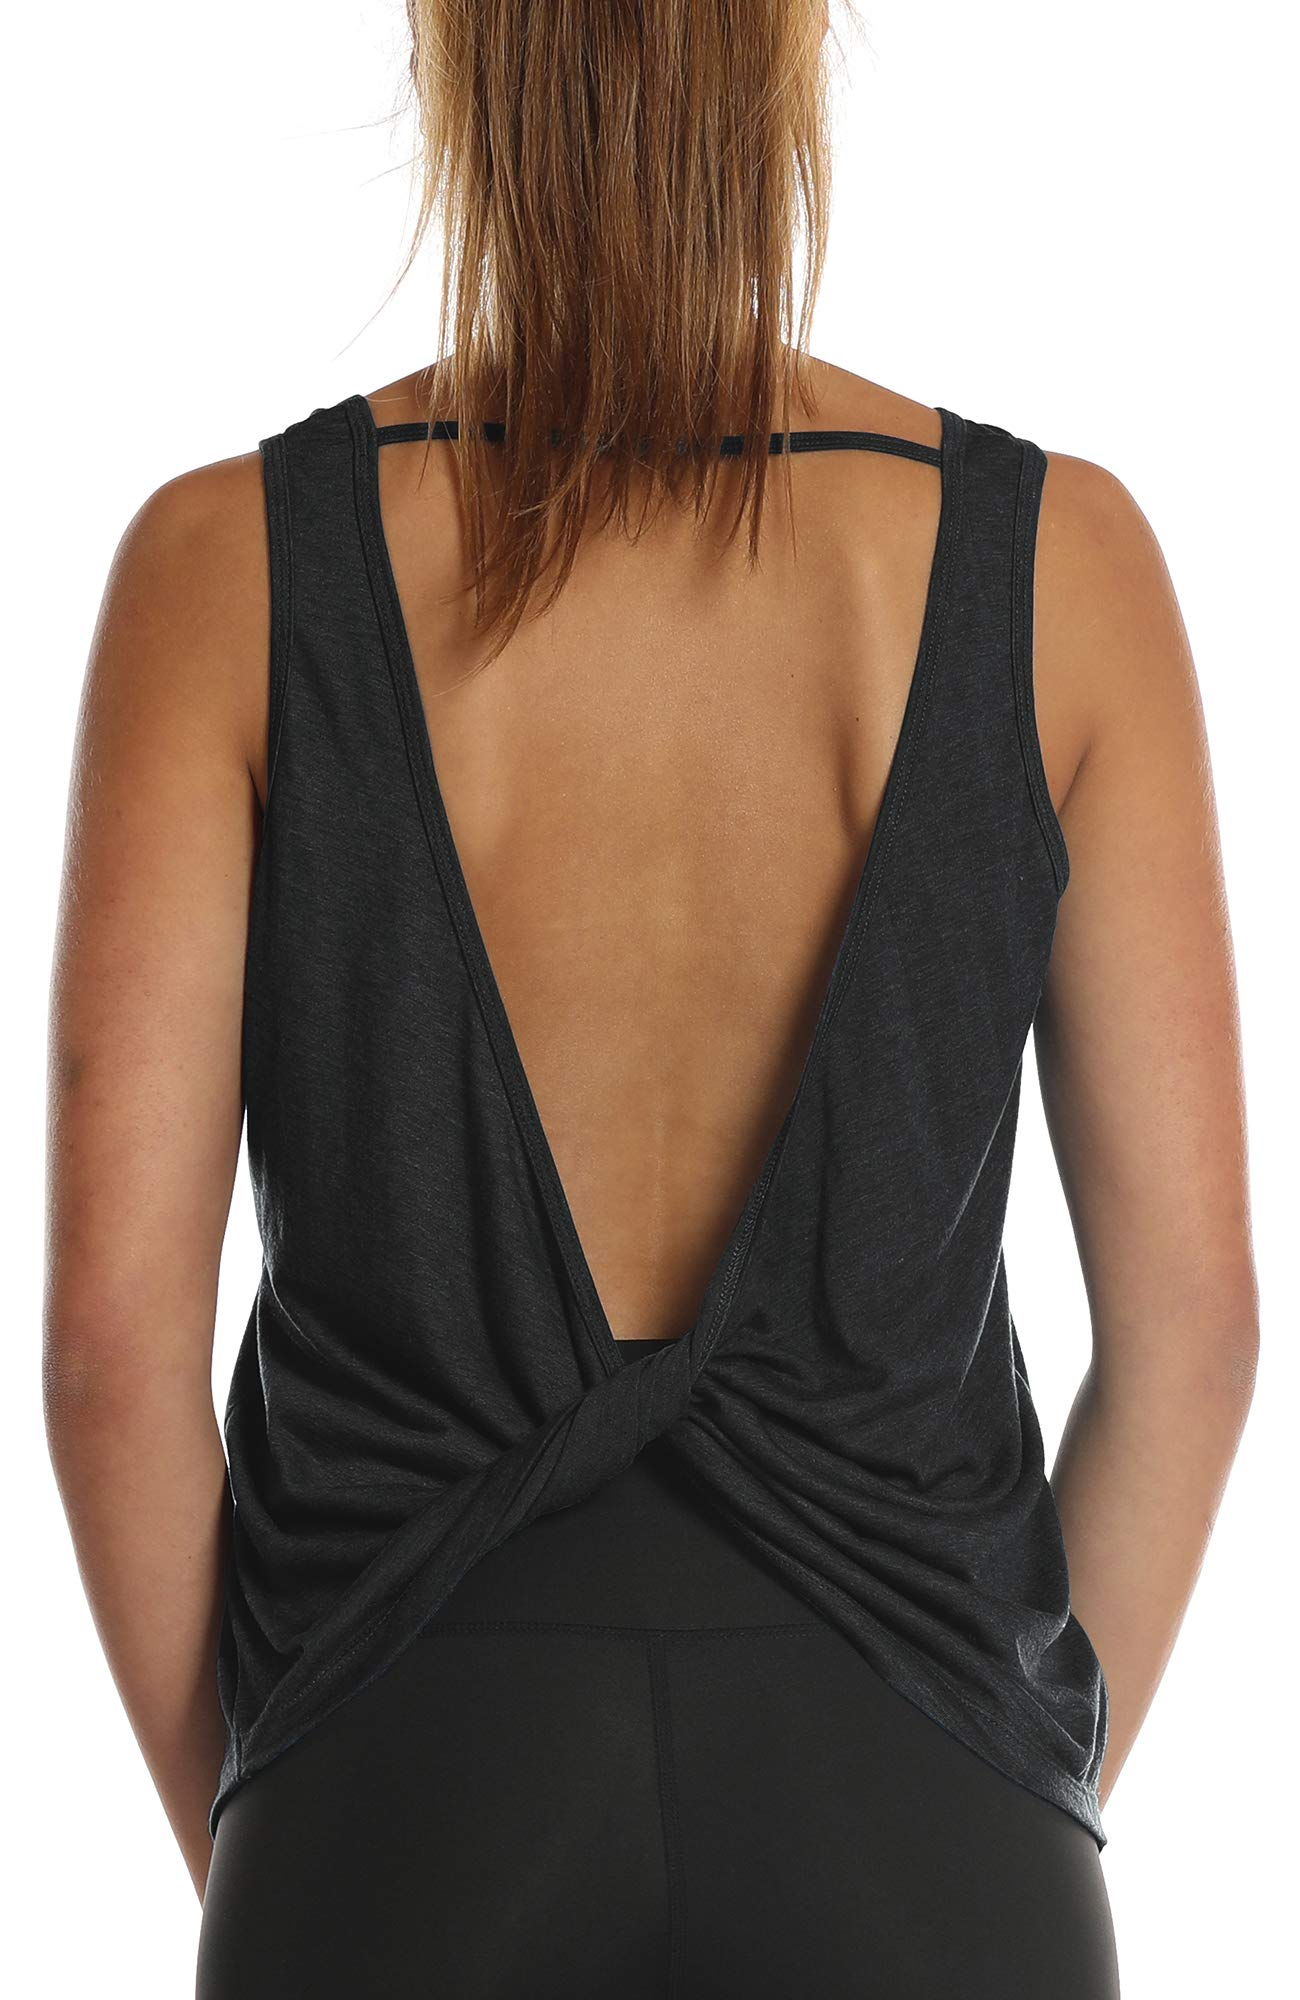 icyzone Workout Tank Tops Women - Open Back Strappy Athletic Tanks, Yoga Tops, Gym Shirts (S, Black)